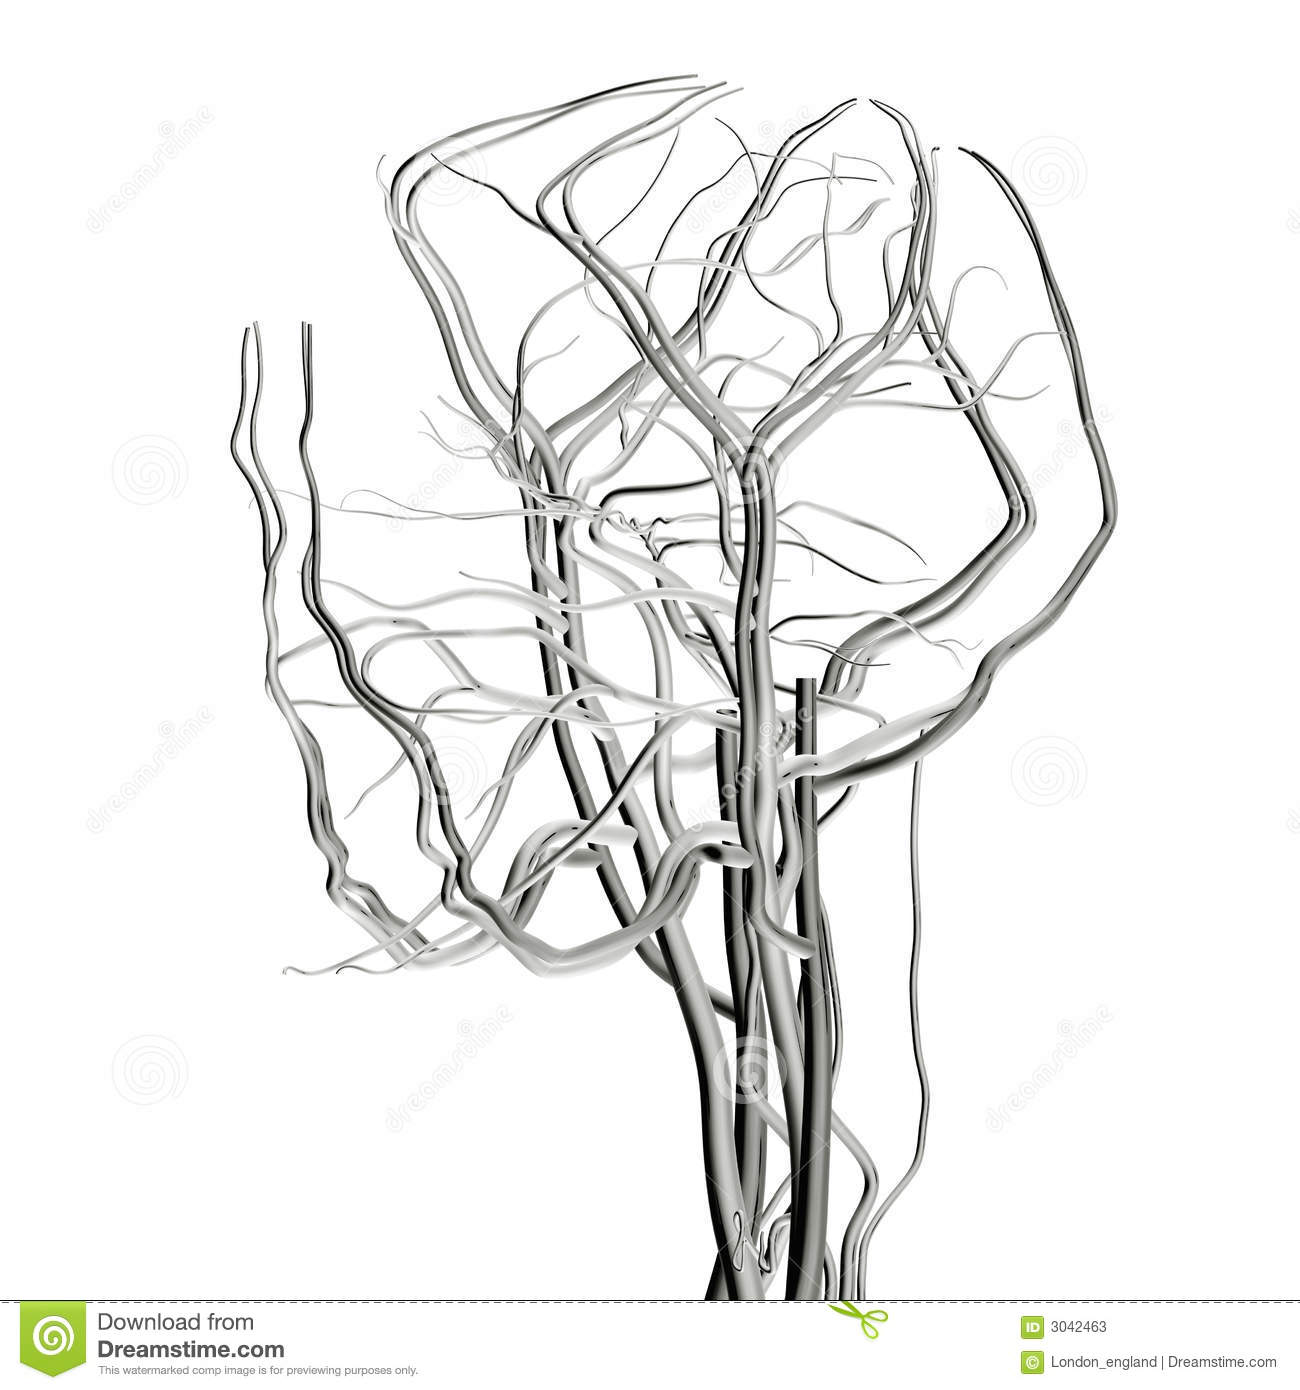 Head And Brain Arteries Royalty Free Stock Image